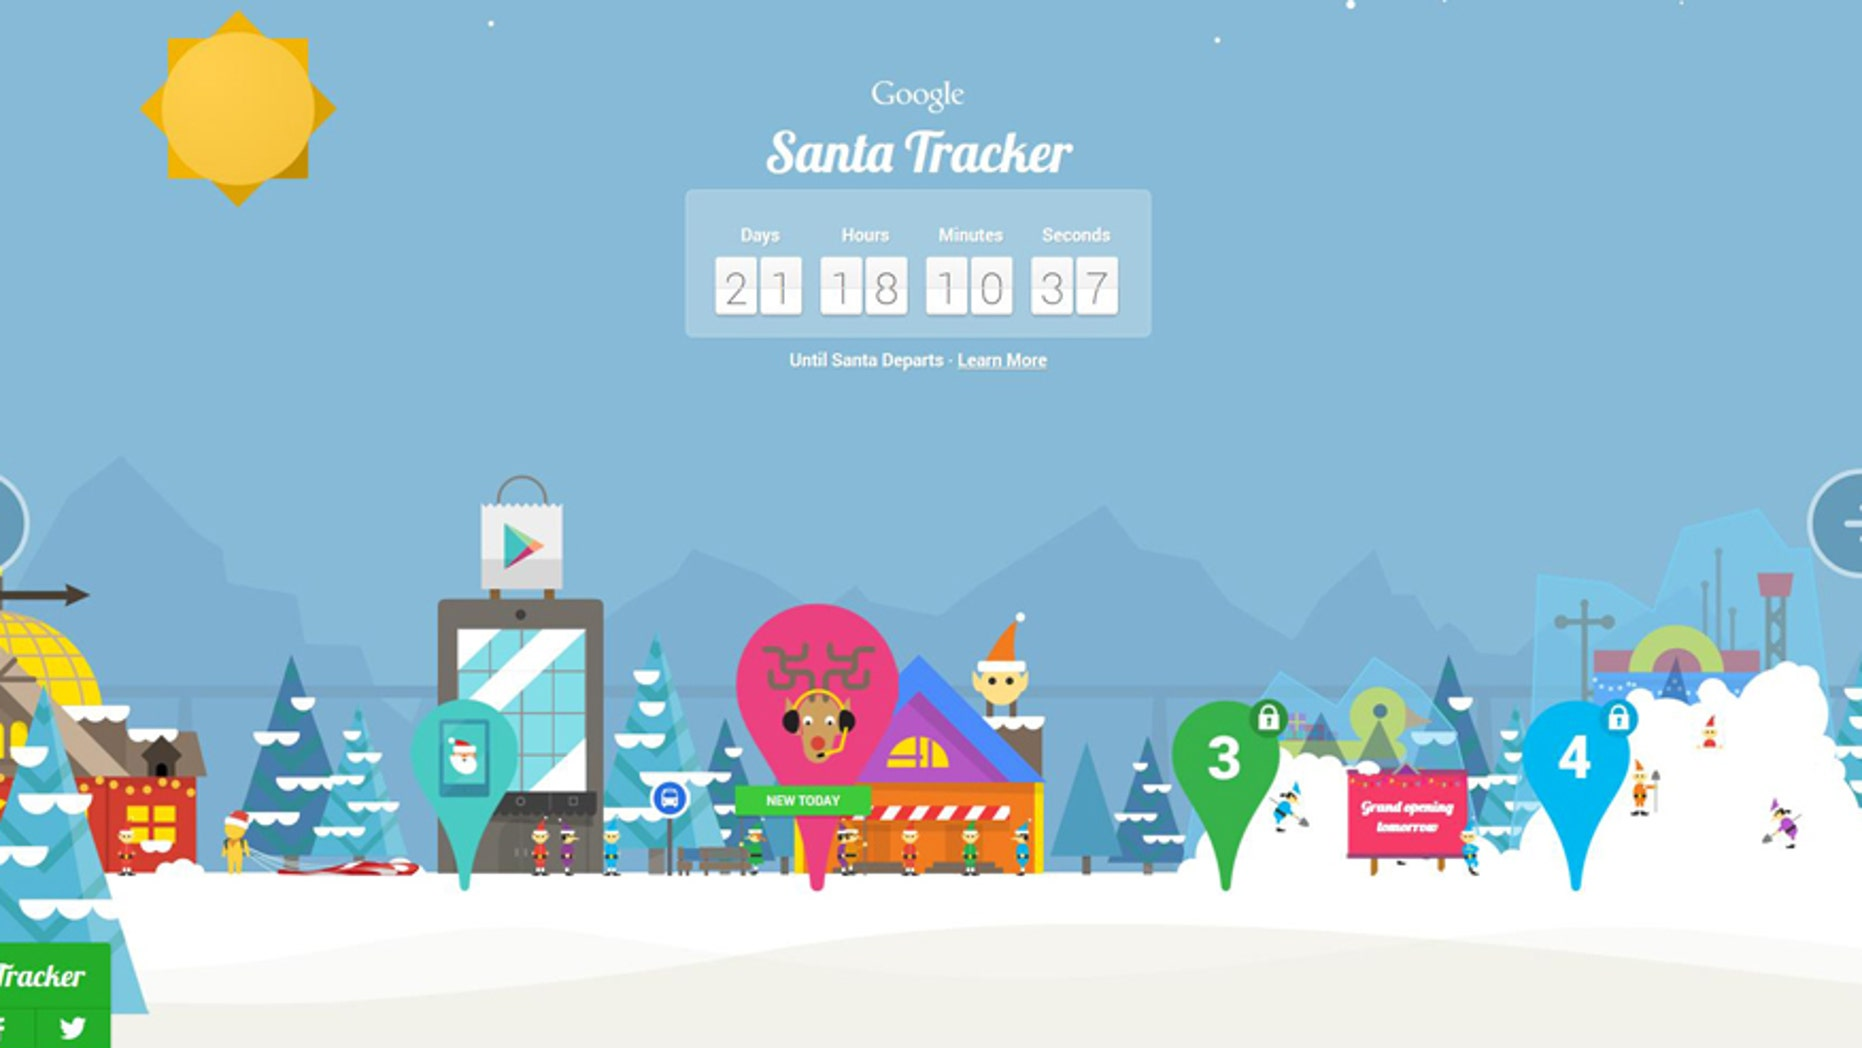 Screenshot of Google Santa Tracker